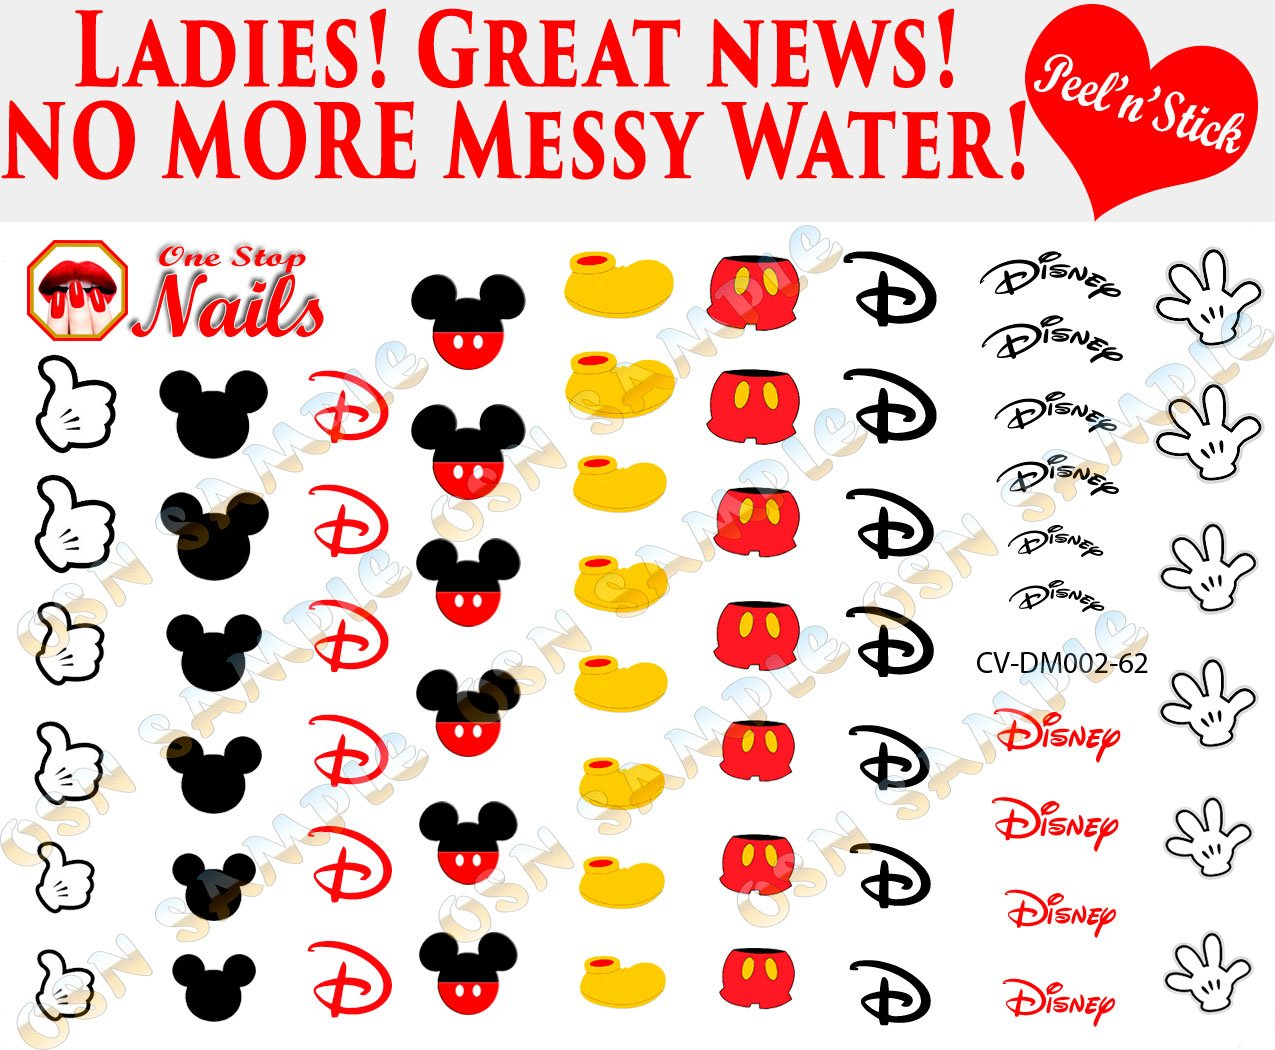 Disney mickey mouse clear vinyl peel and stick not waterslide nail decals stickers